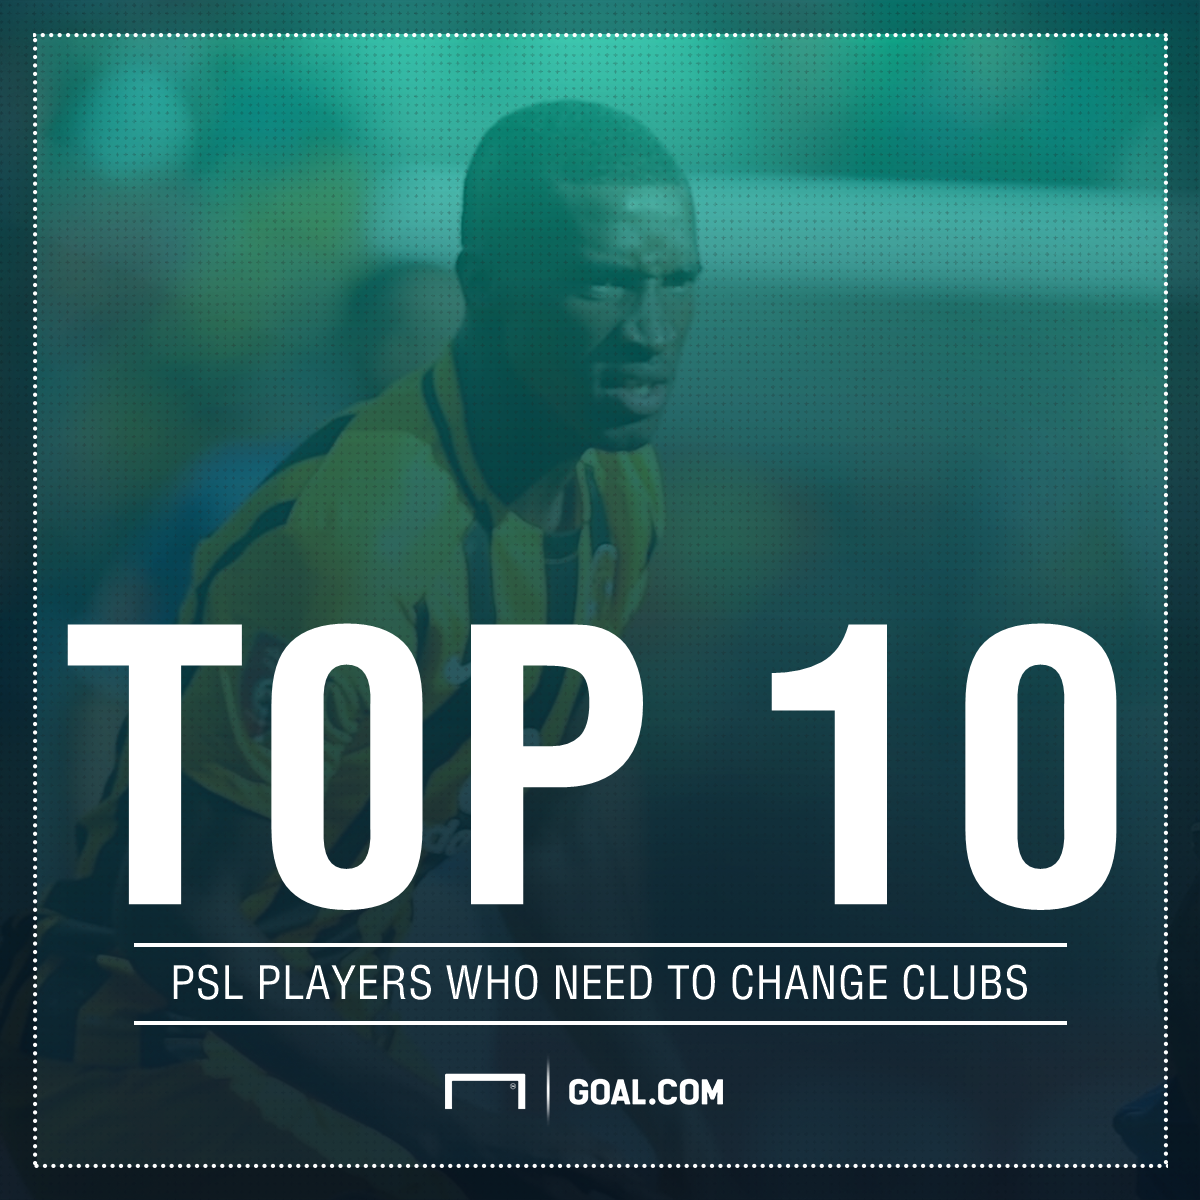 Top 10 psl players who need to change clubs goal com